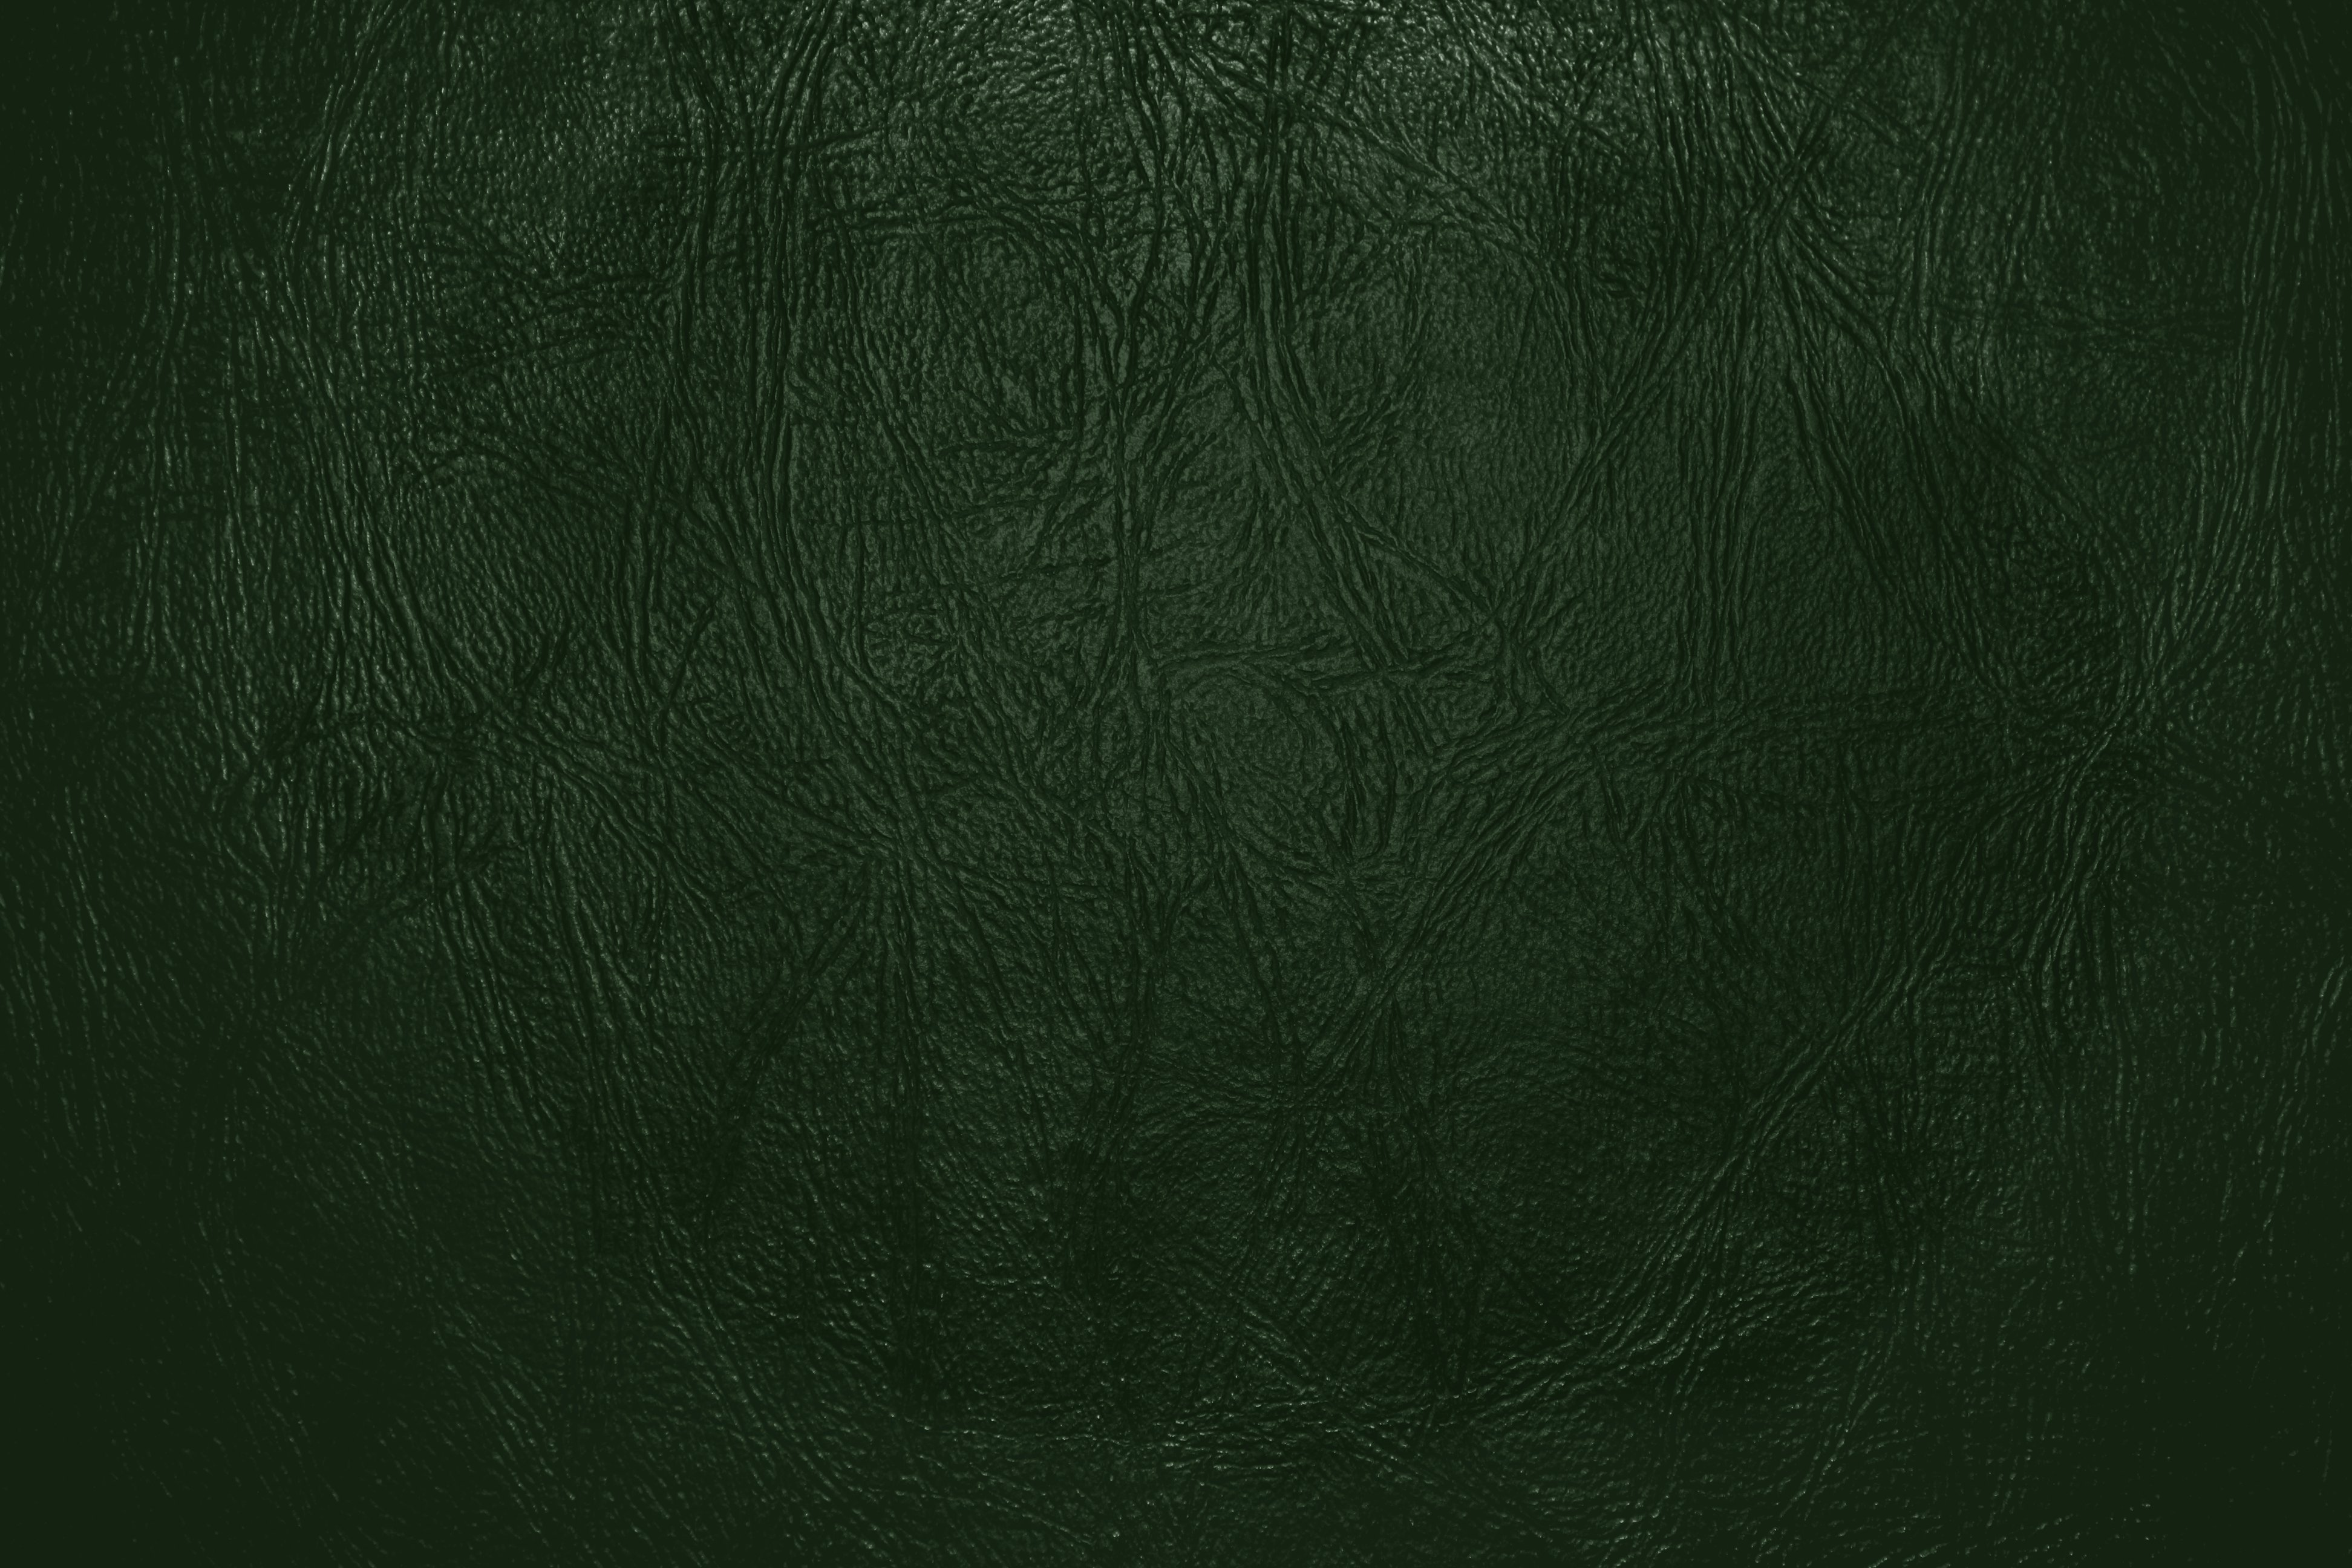 Forest Green Leather Close Up Texture Picture Free